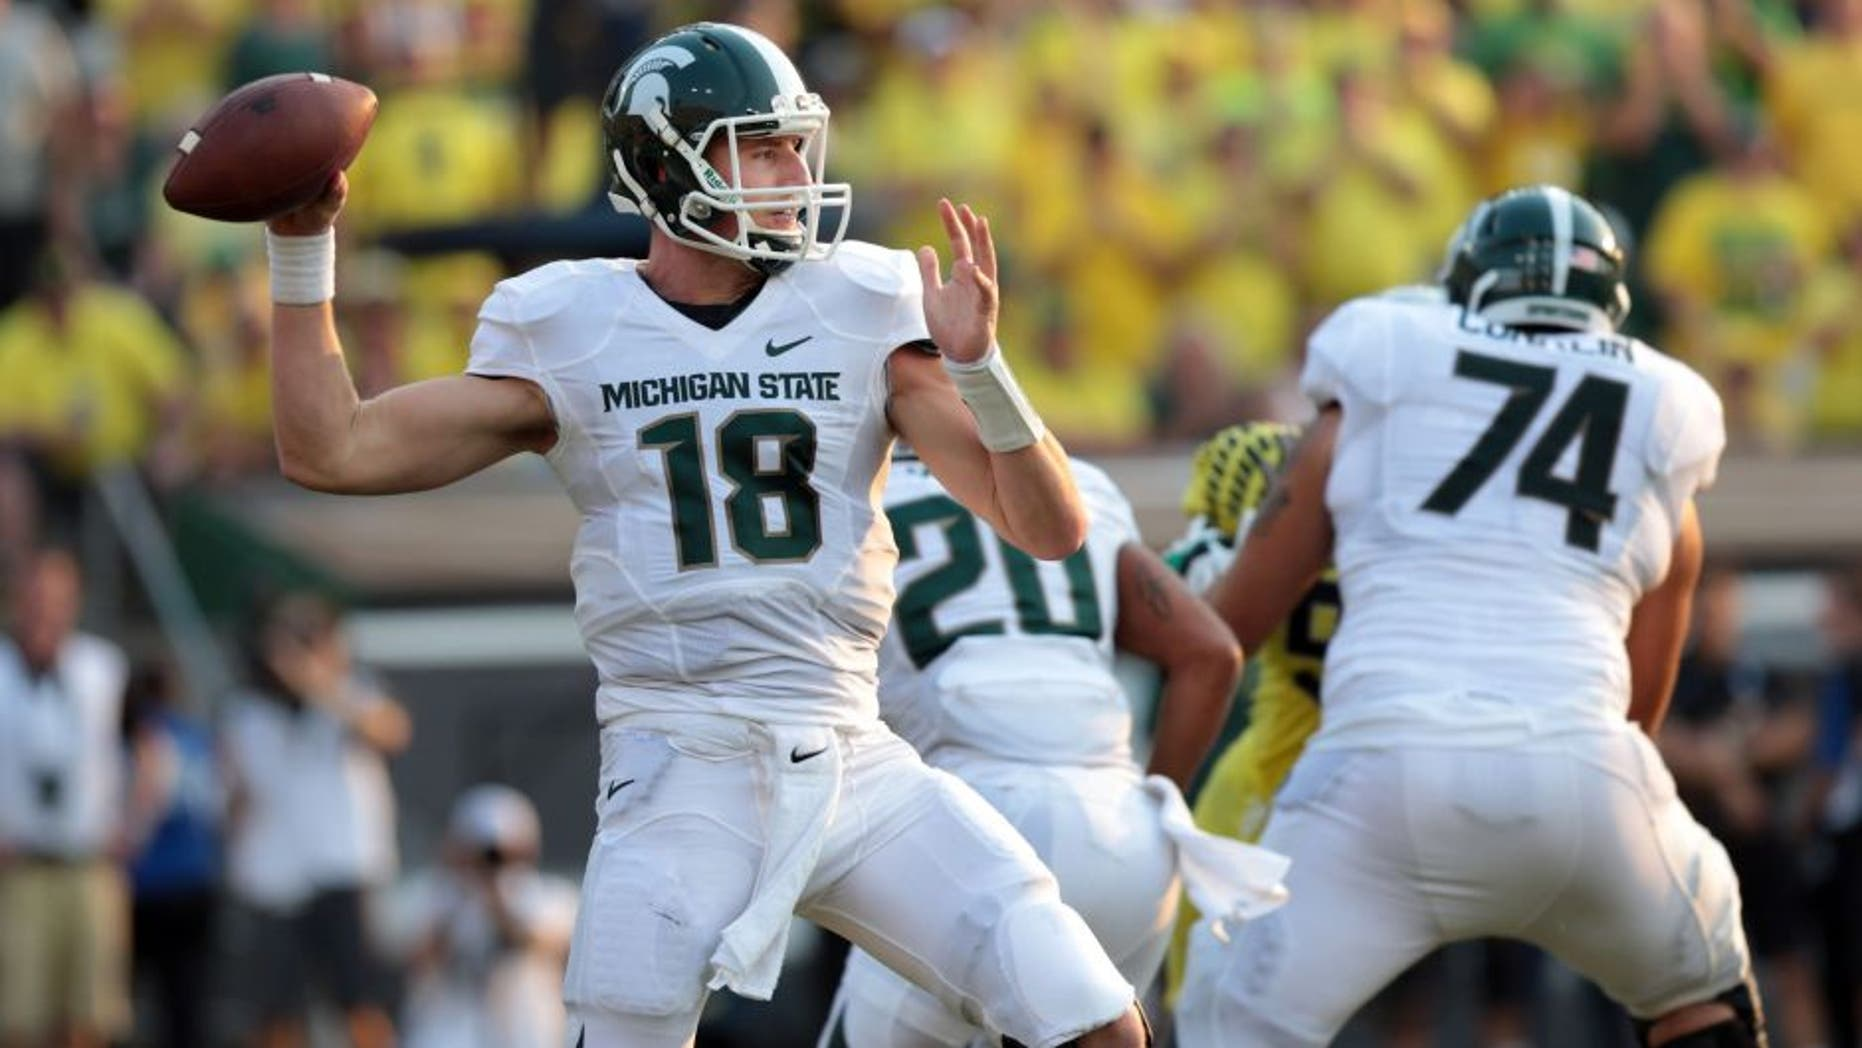 Image: Michigan State QB Connor Cook